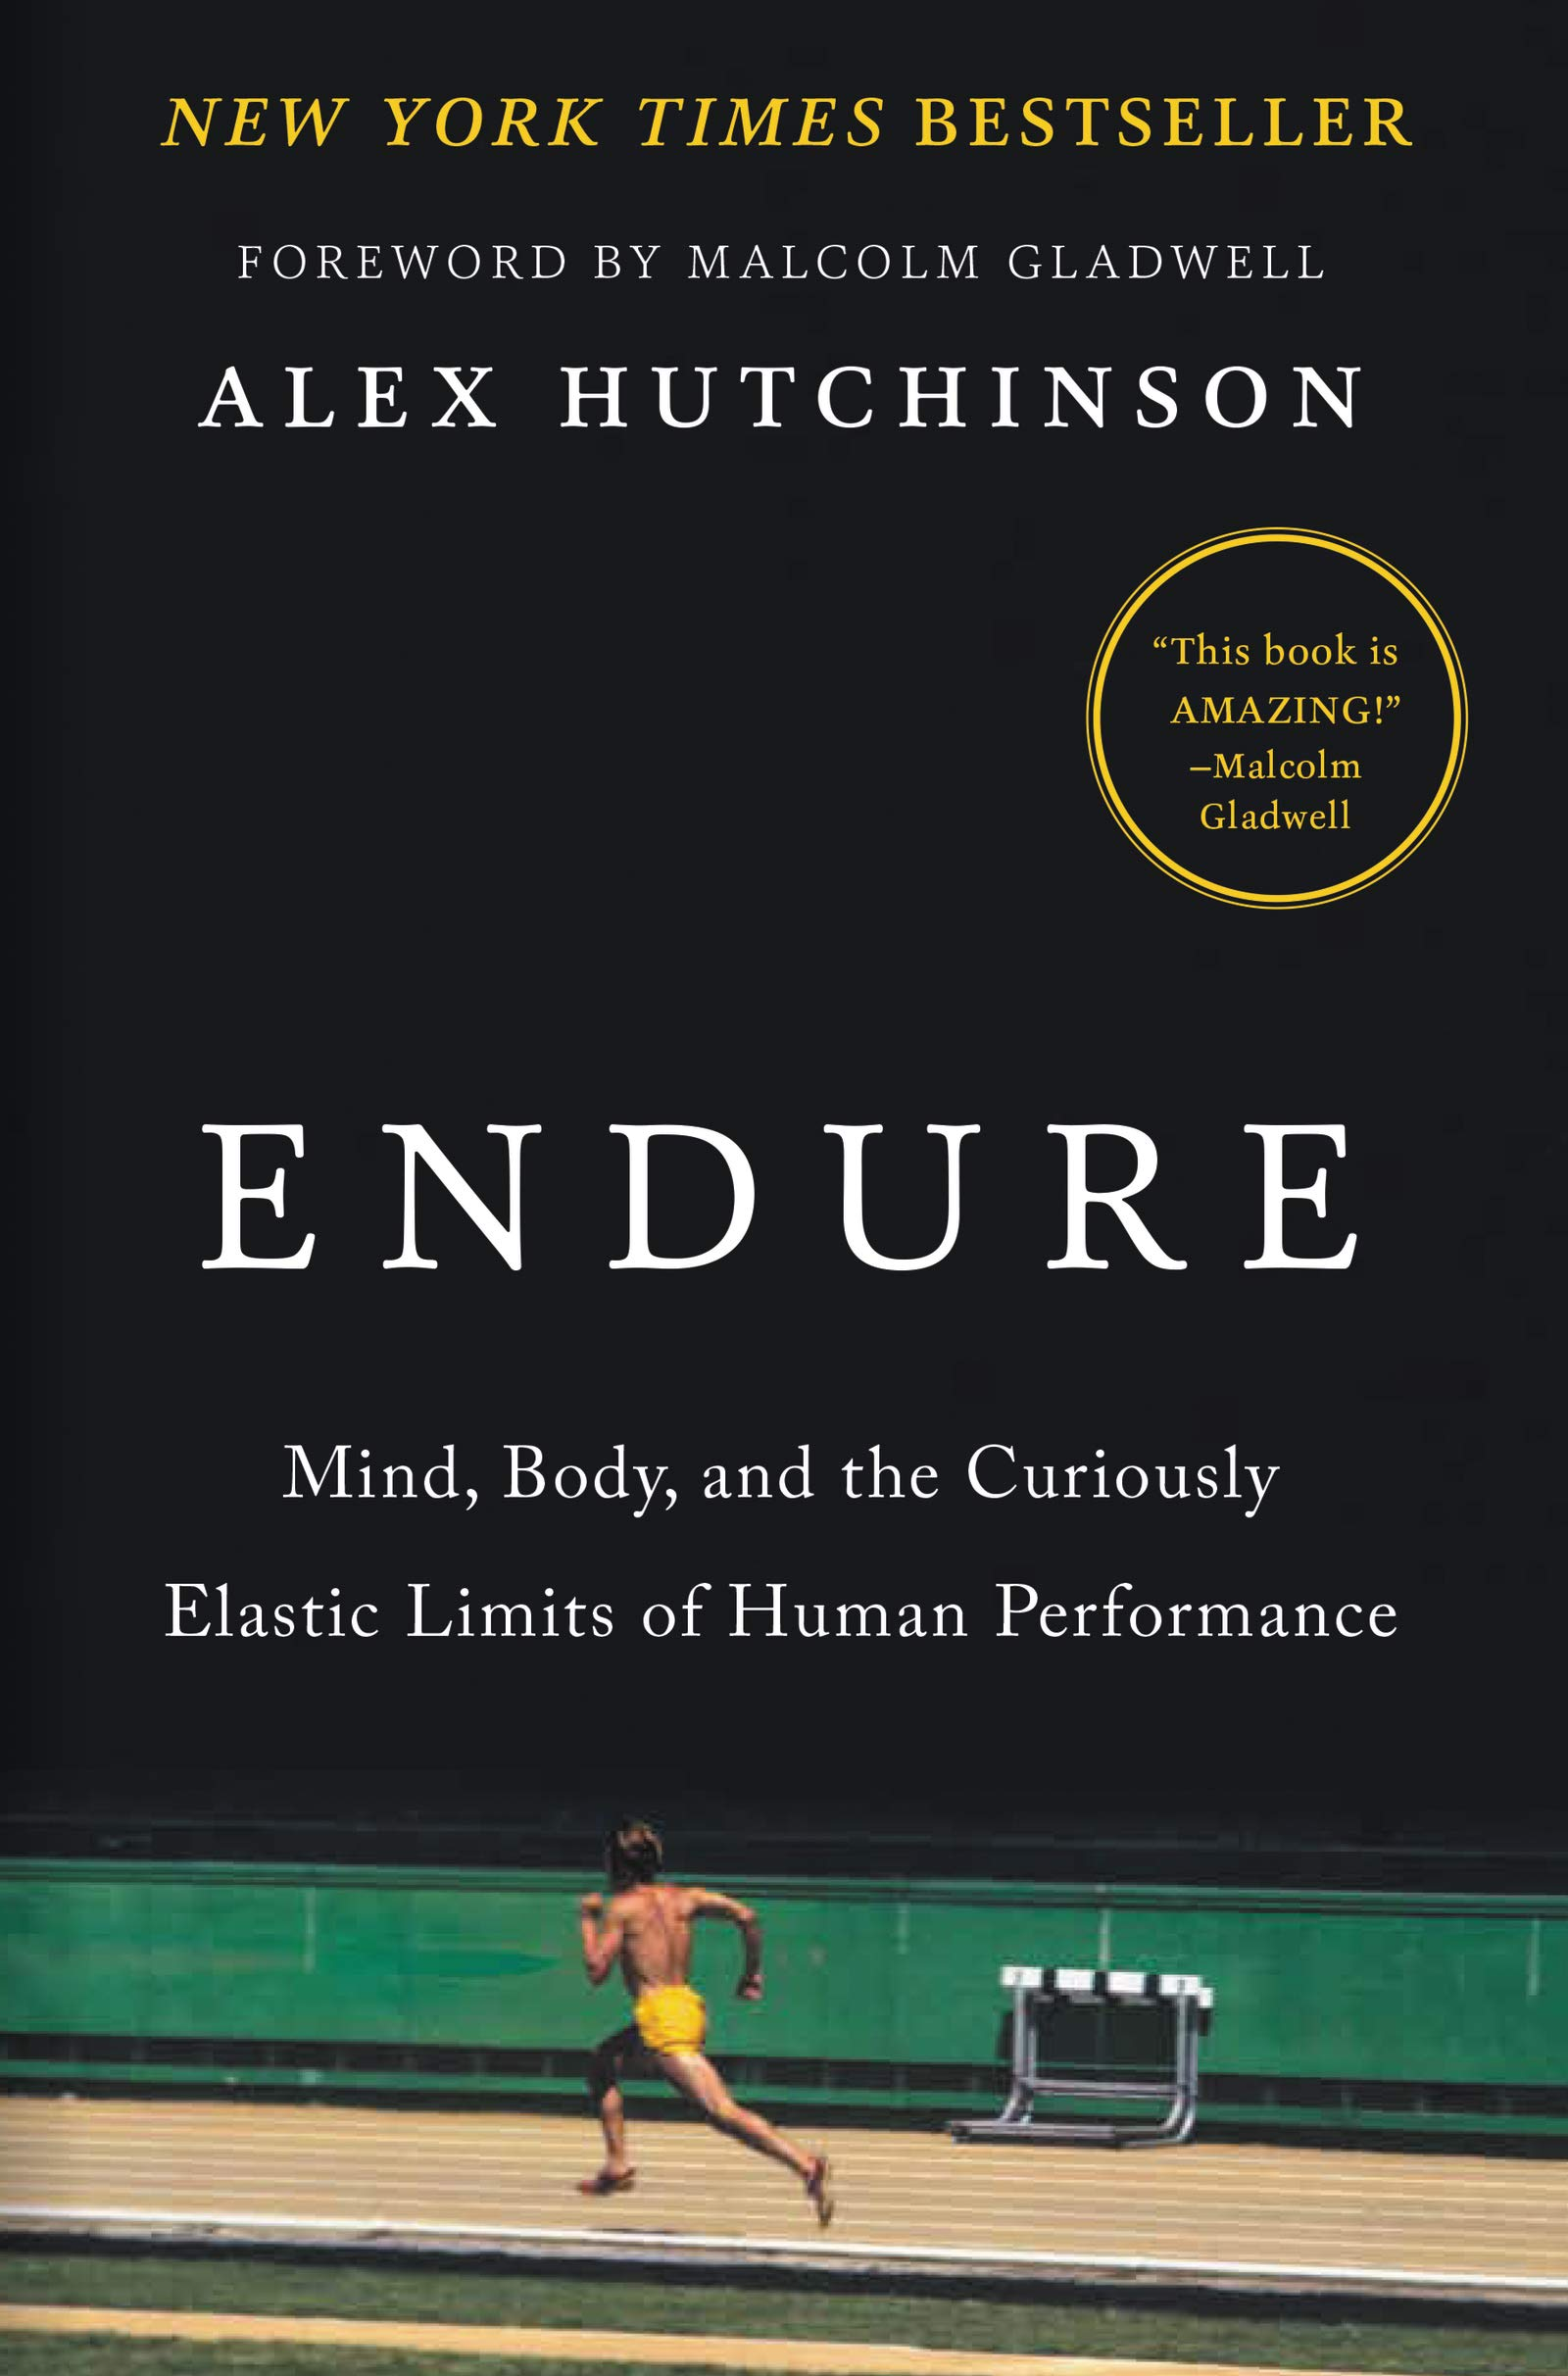 Endure: Mind, Body, and the Curiously Elastic Limits of Human Performance book cover